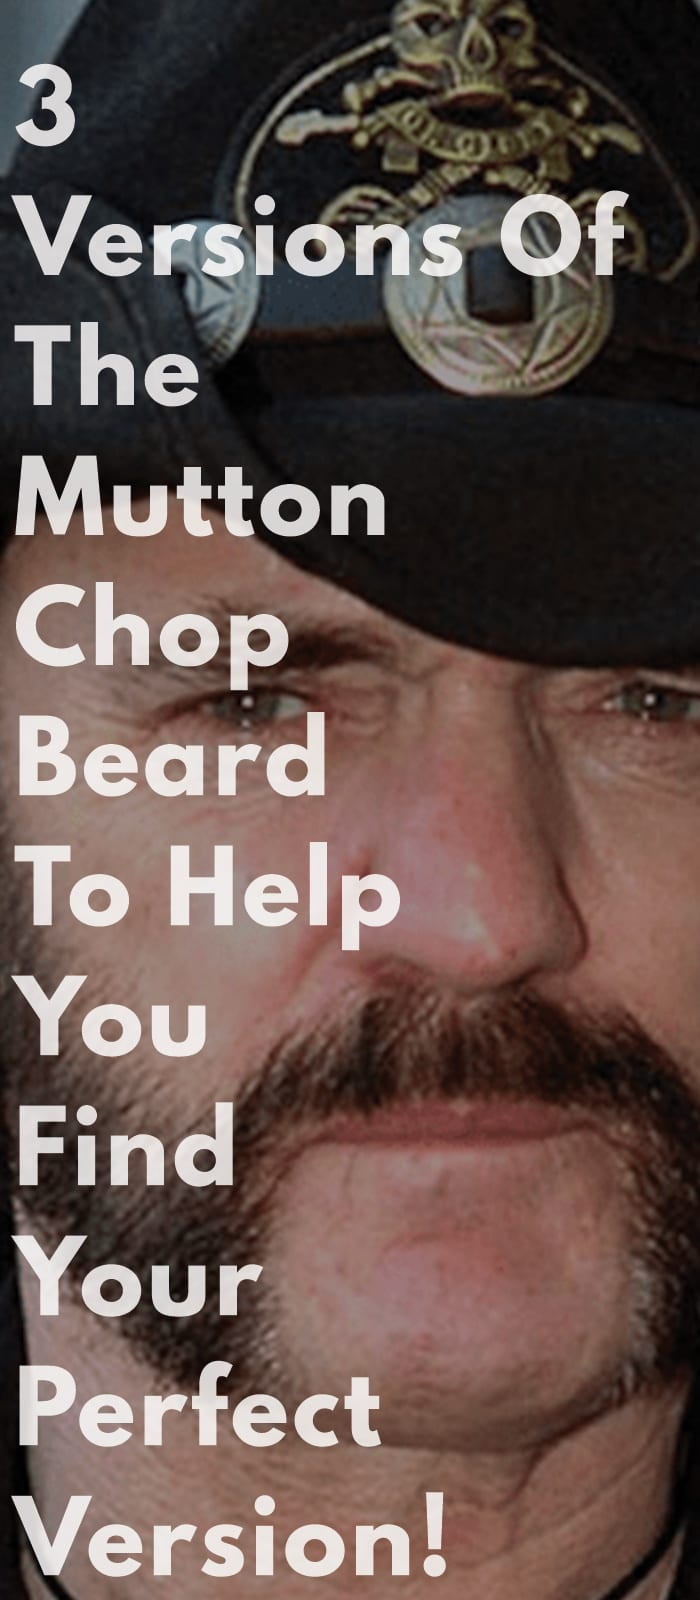 3-Versions-Of-The-Mutton-Chop-Beard-To-Help-You-Find-Your-Perfect-Version!